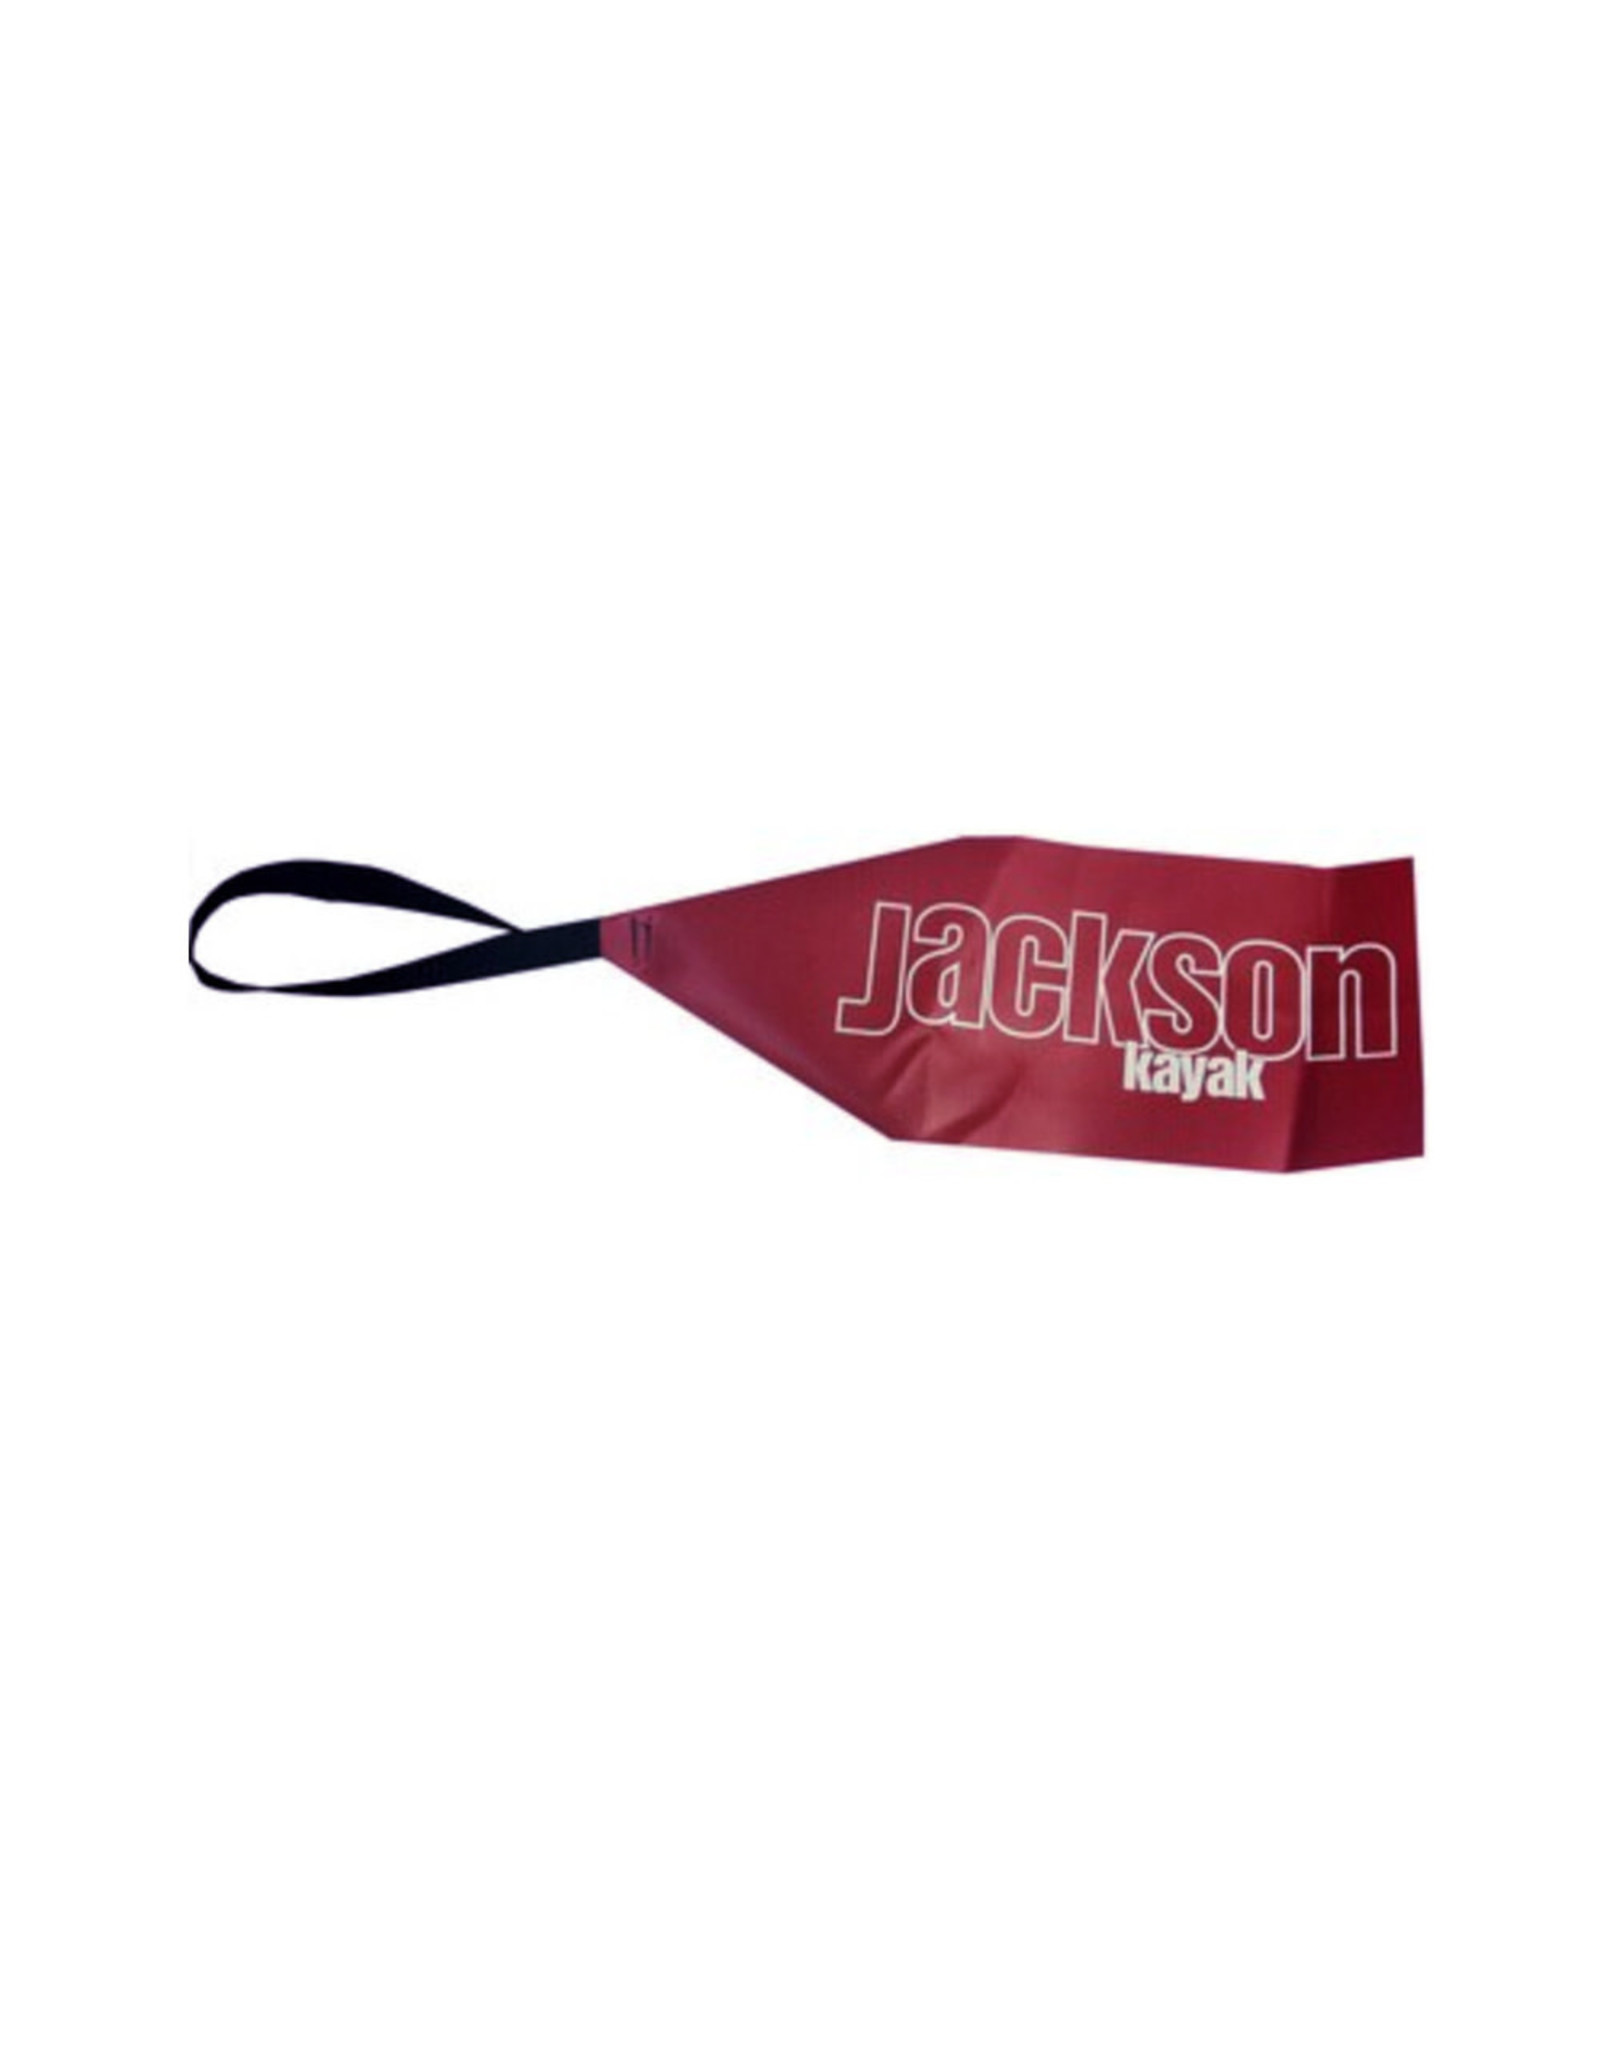 Jackson Kayaks Jackson transport flag